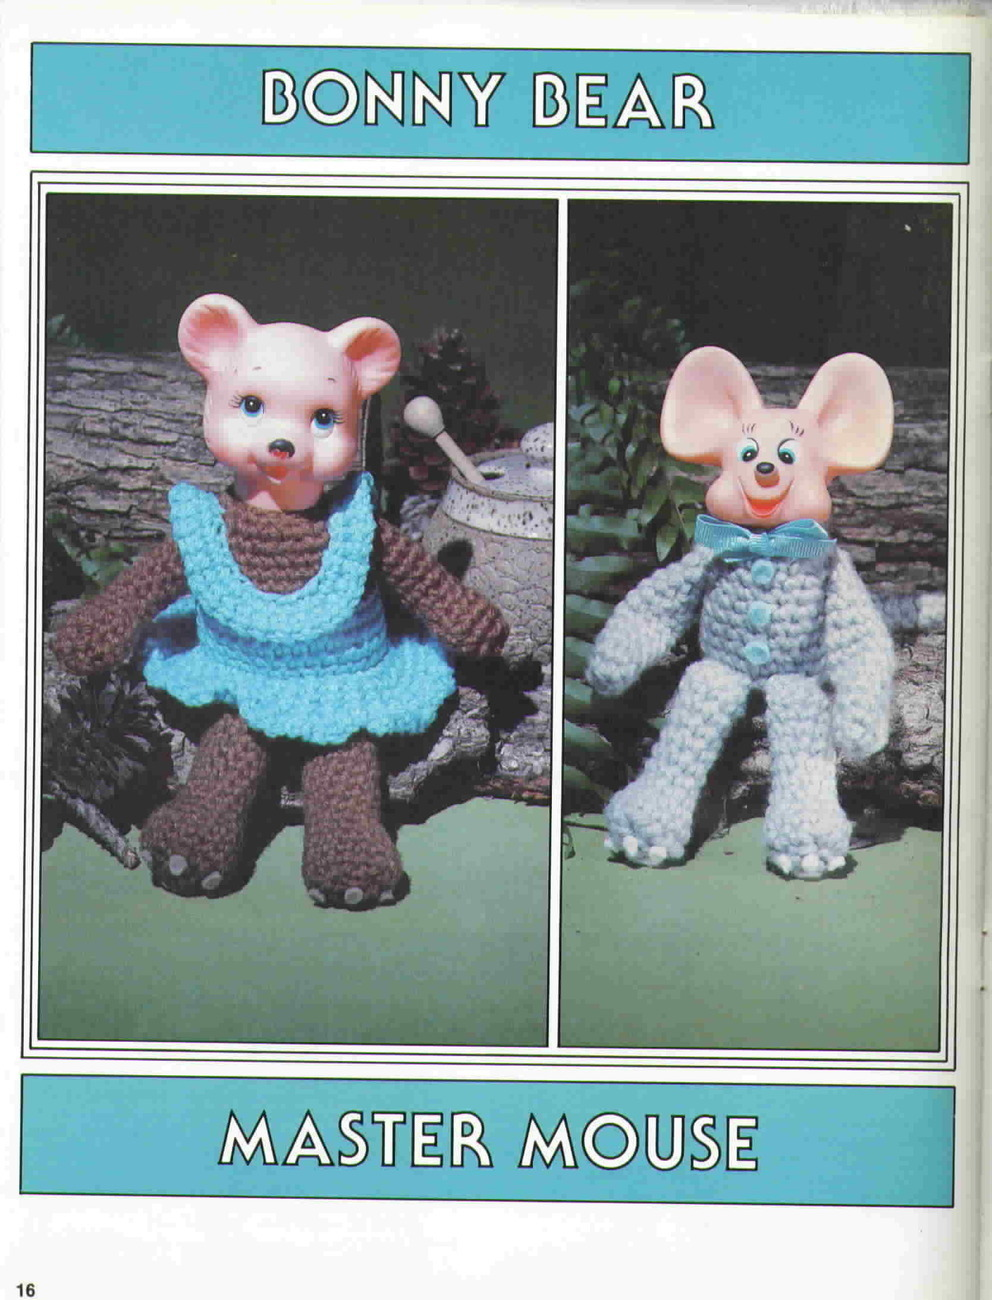 Vintage Crocheted Animal Infants by Sue Penrod from Plaid Enterprises